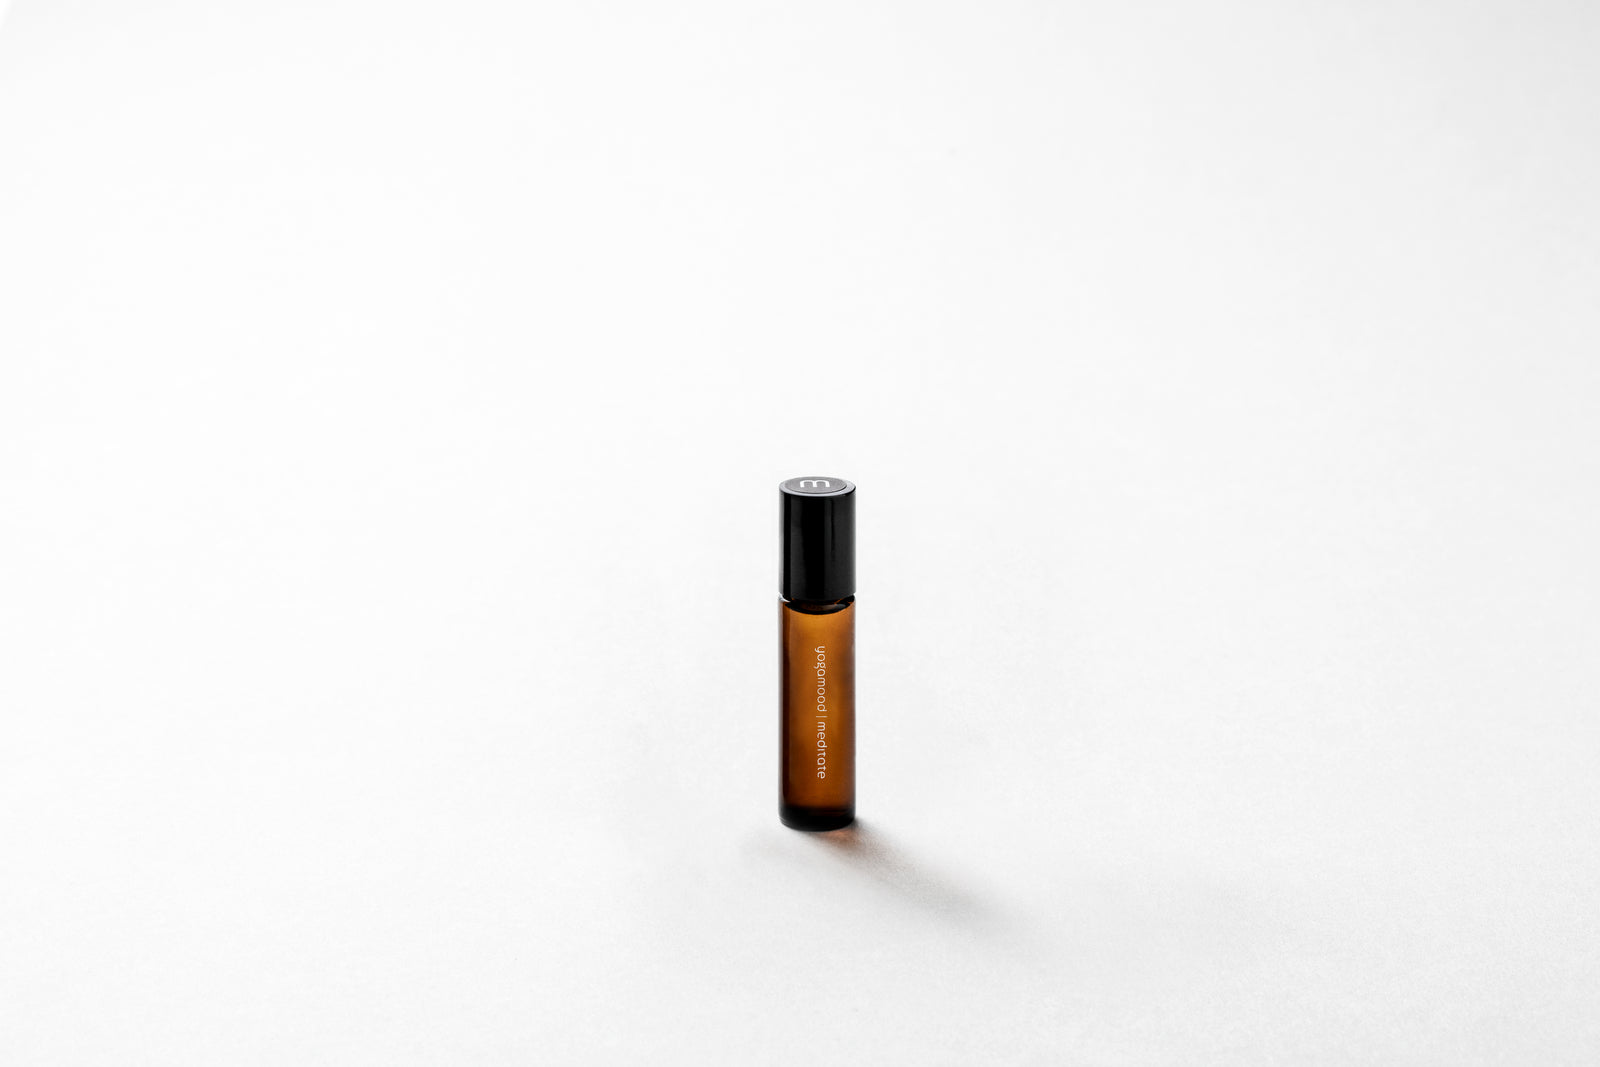 Meditate Body Scent, 10 ml